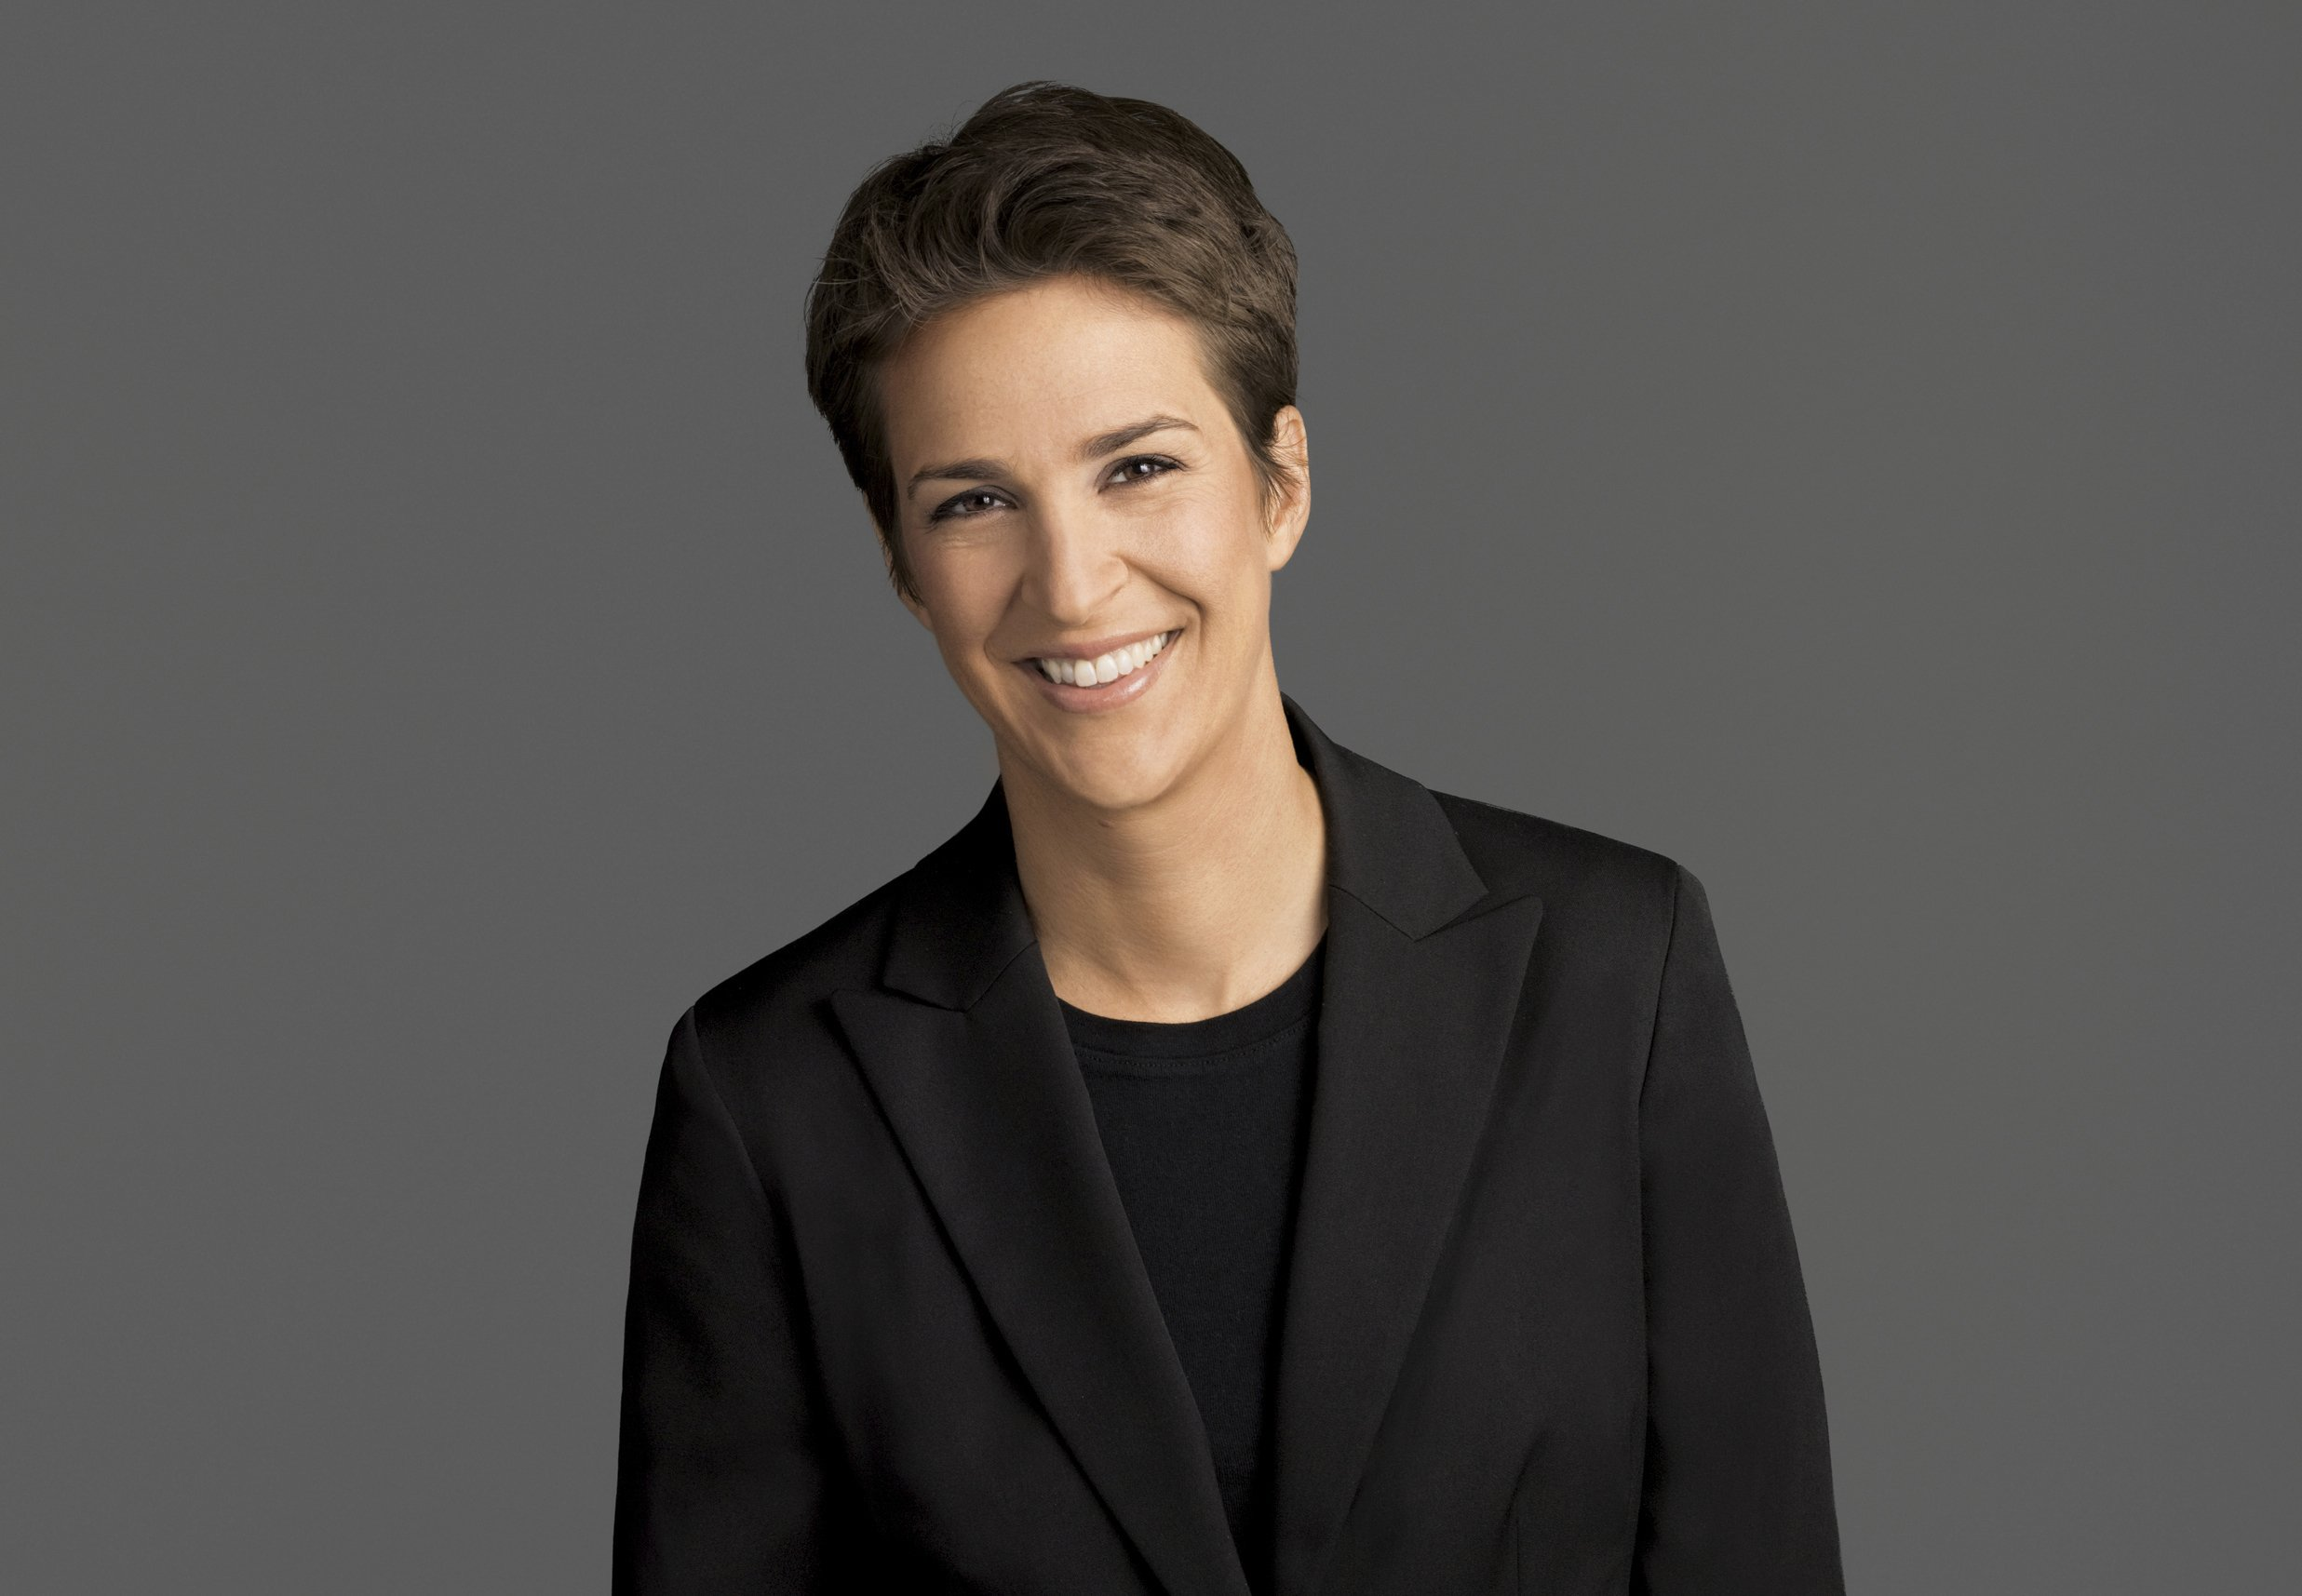 Despite criticism, Maddow gets biggest audience